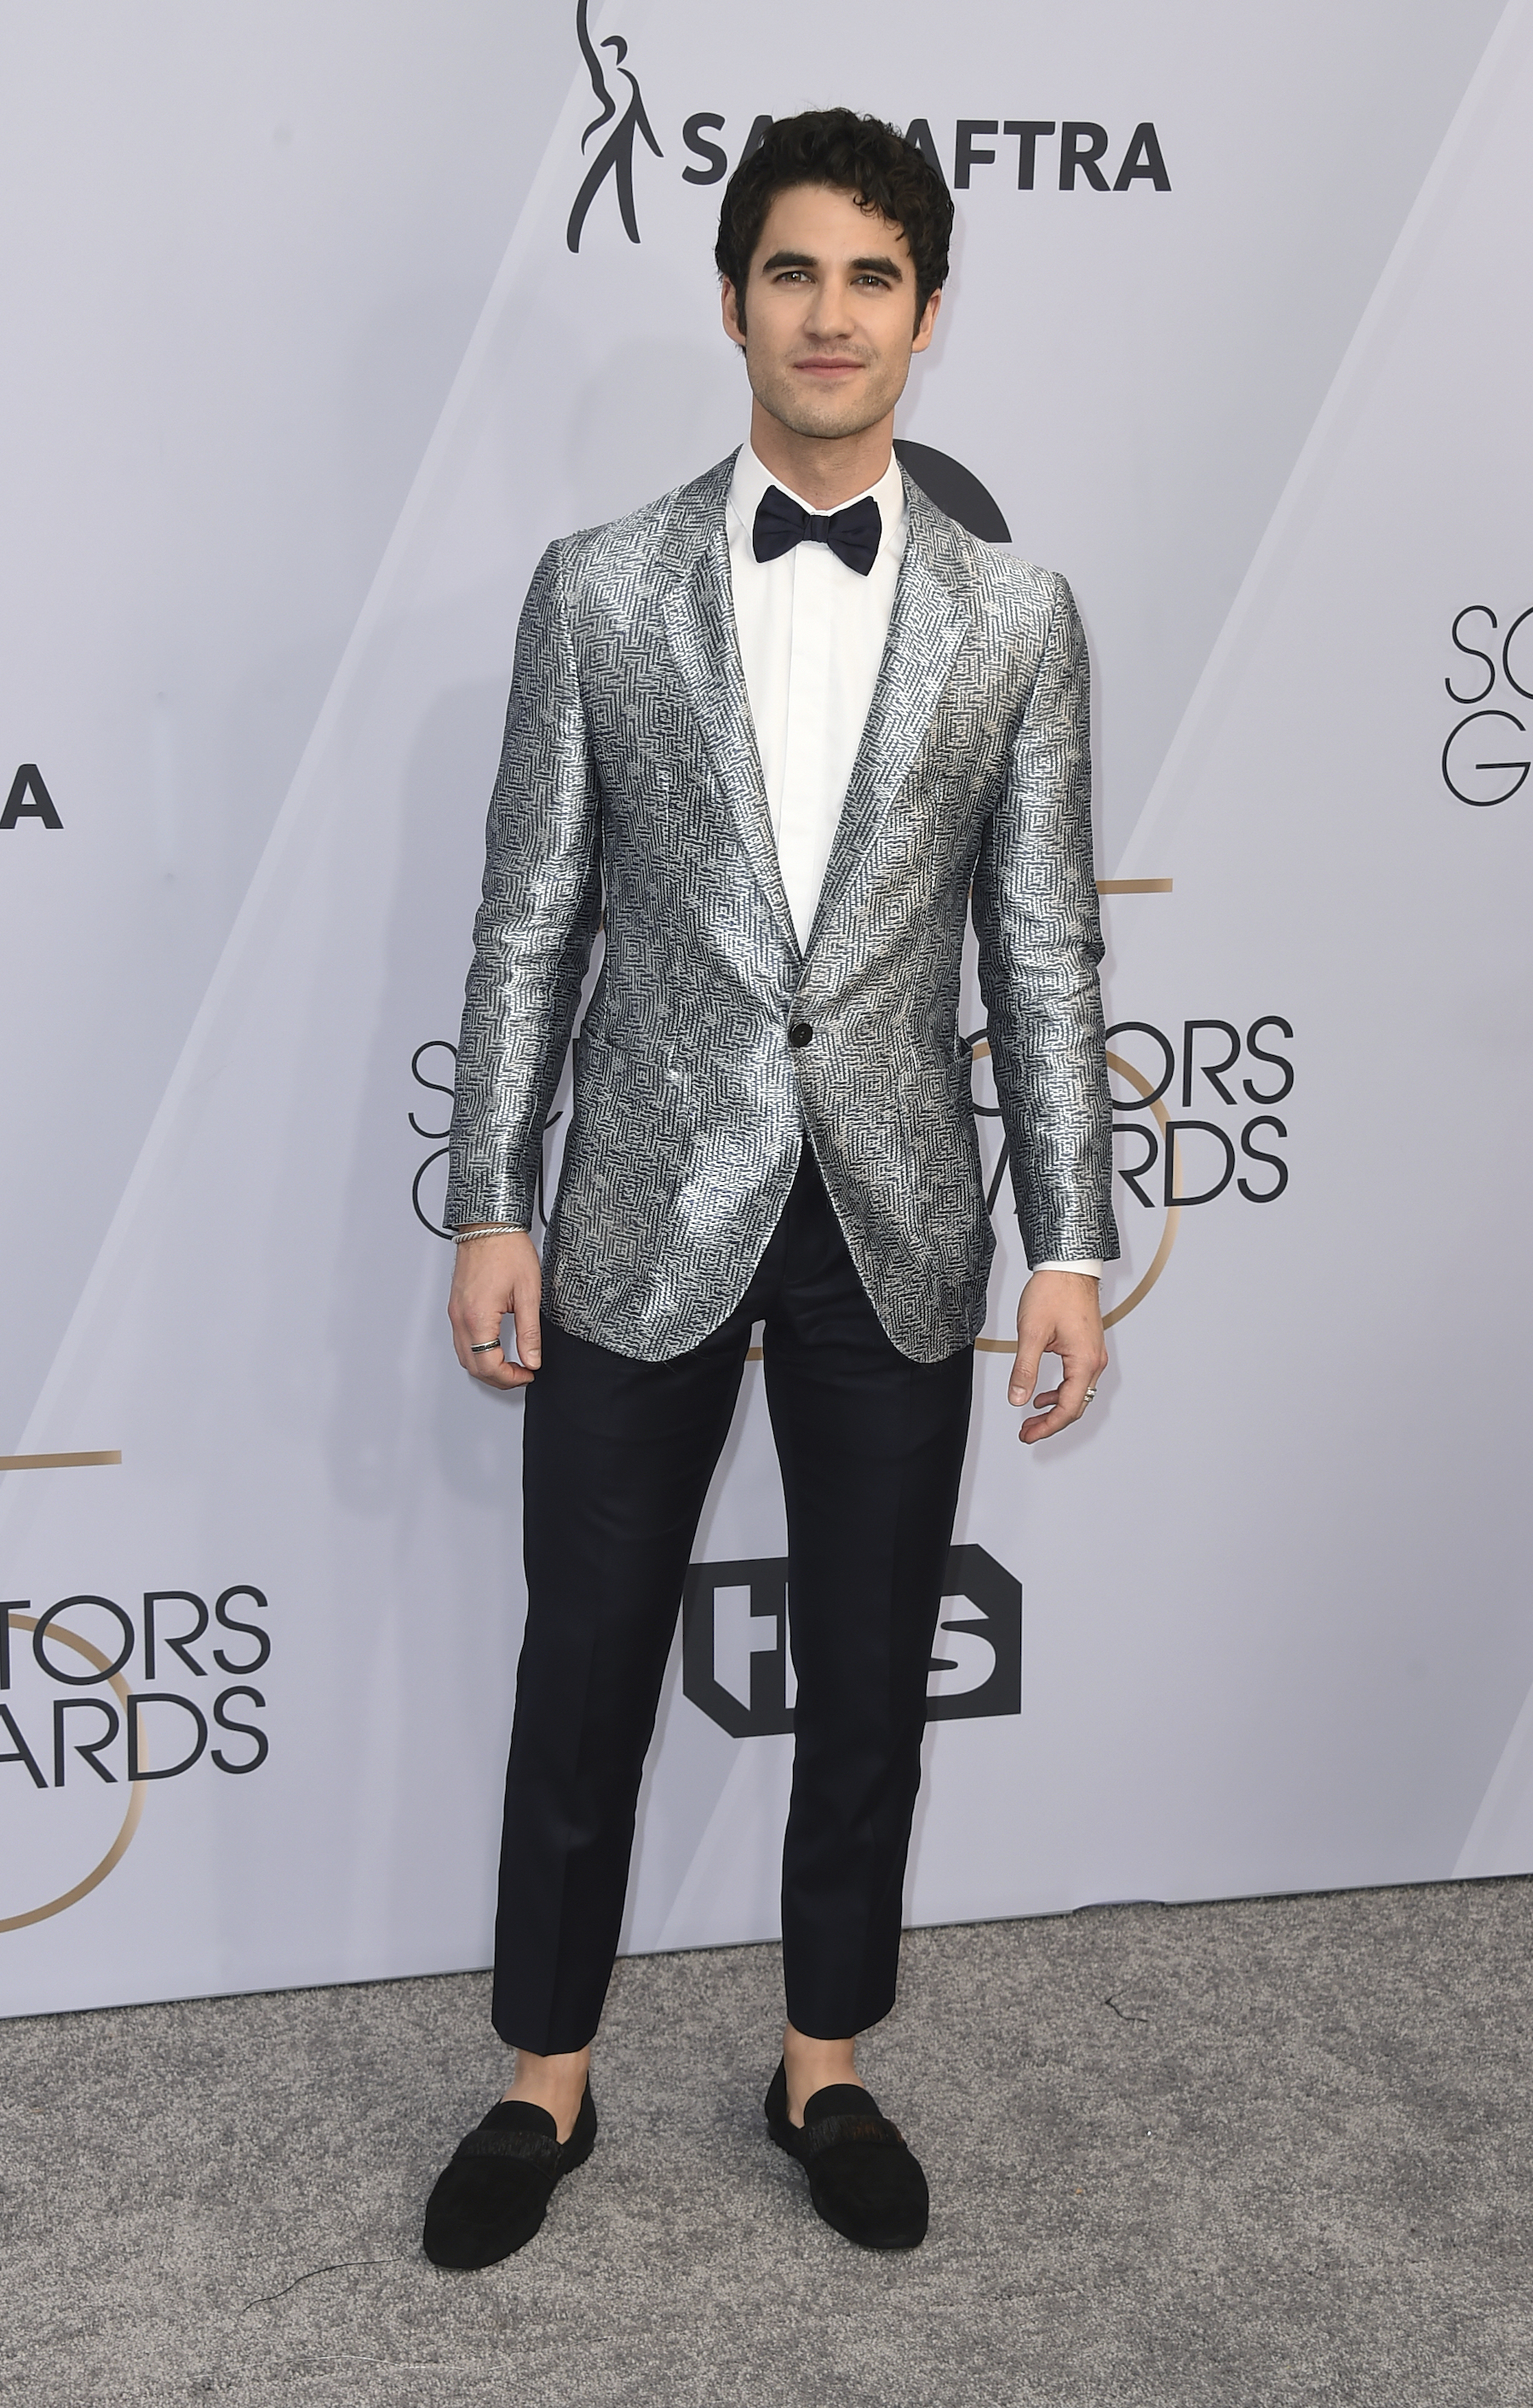 <div class='meta'><div class='origin-logo' data-origin='AP'></div><span class='caption-text' data-credit='Jordan Strauss/Invision/AP'>Darren Criss arrives at the 25th annual Screen Actors Guild Awards at the Shrine Auditorium & Expo Hall on Sunday, Jan. 27, 2019, in Los Angeles.</span></div>